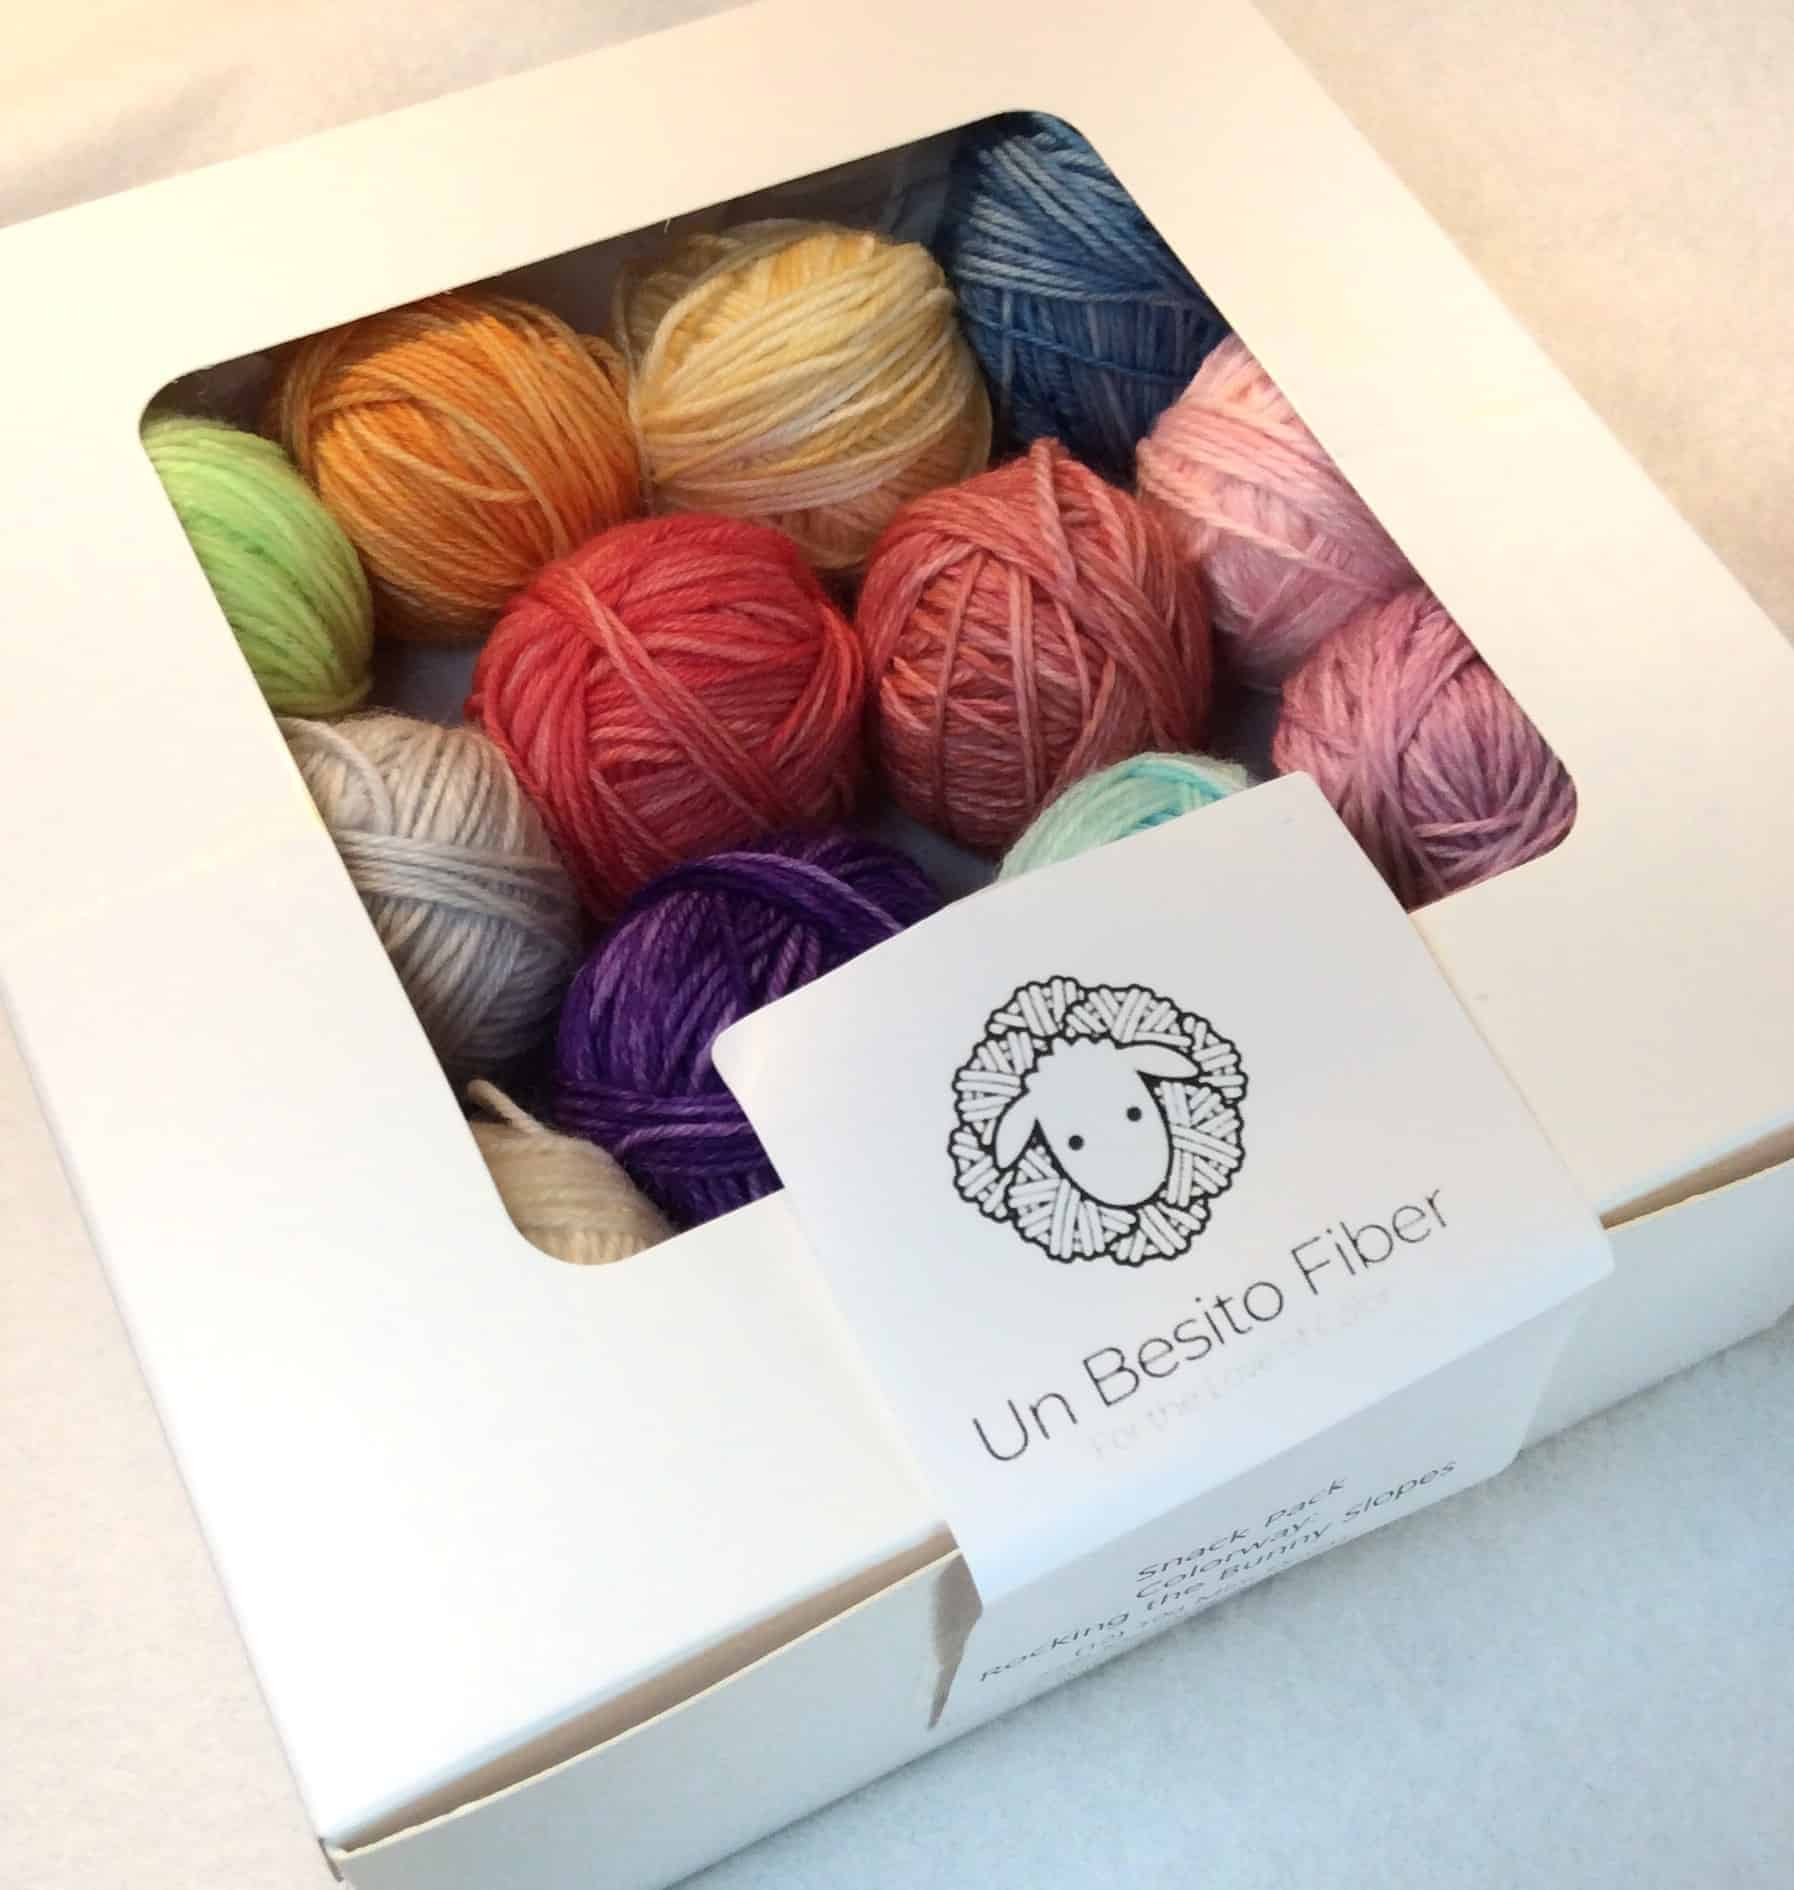 A cake box of brightly colored yarn balls.